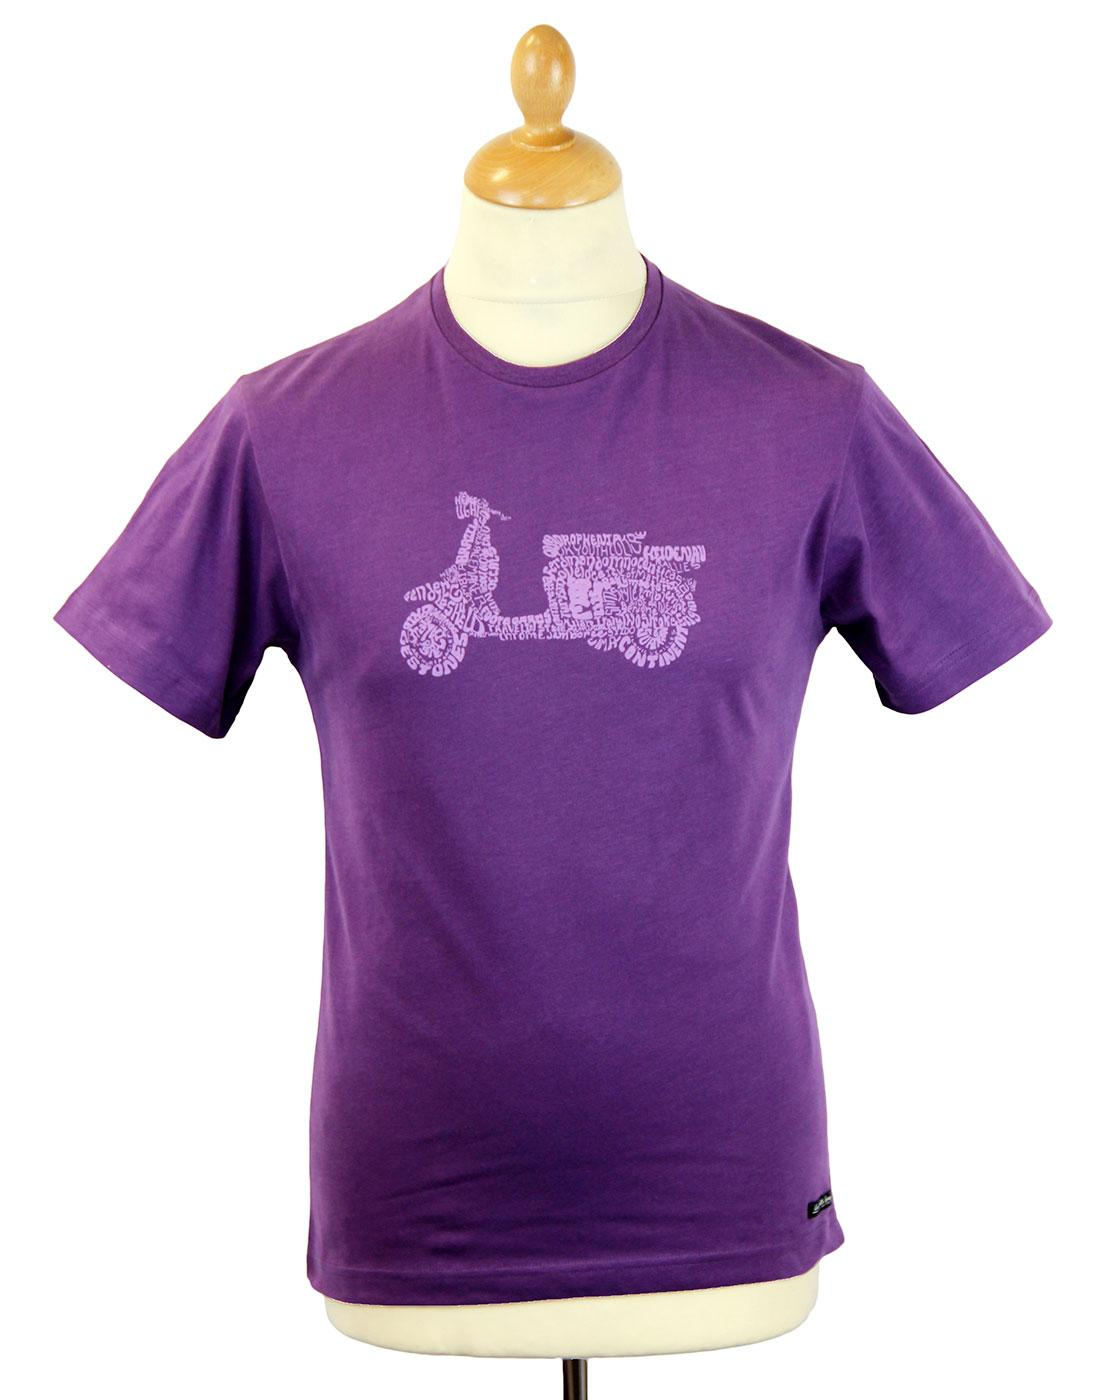 LAMBRETTA Joni James Word Art Mod Scooter Tee (P)